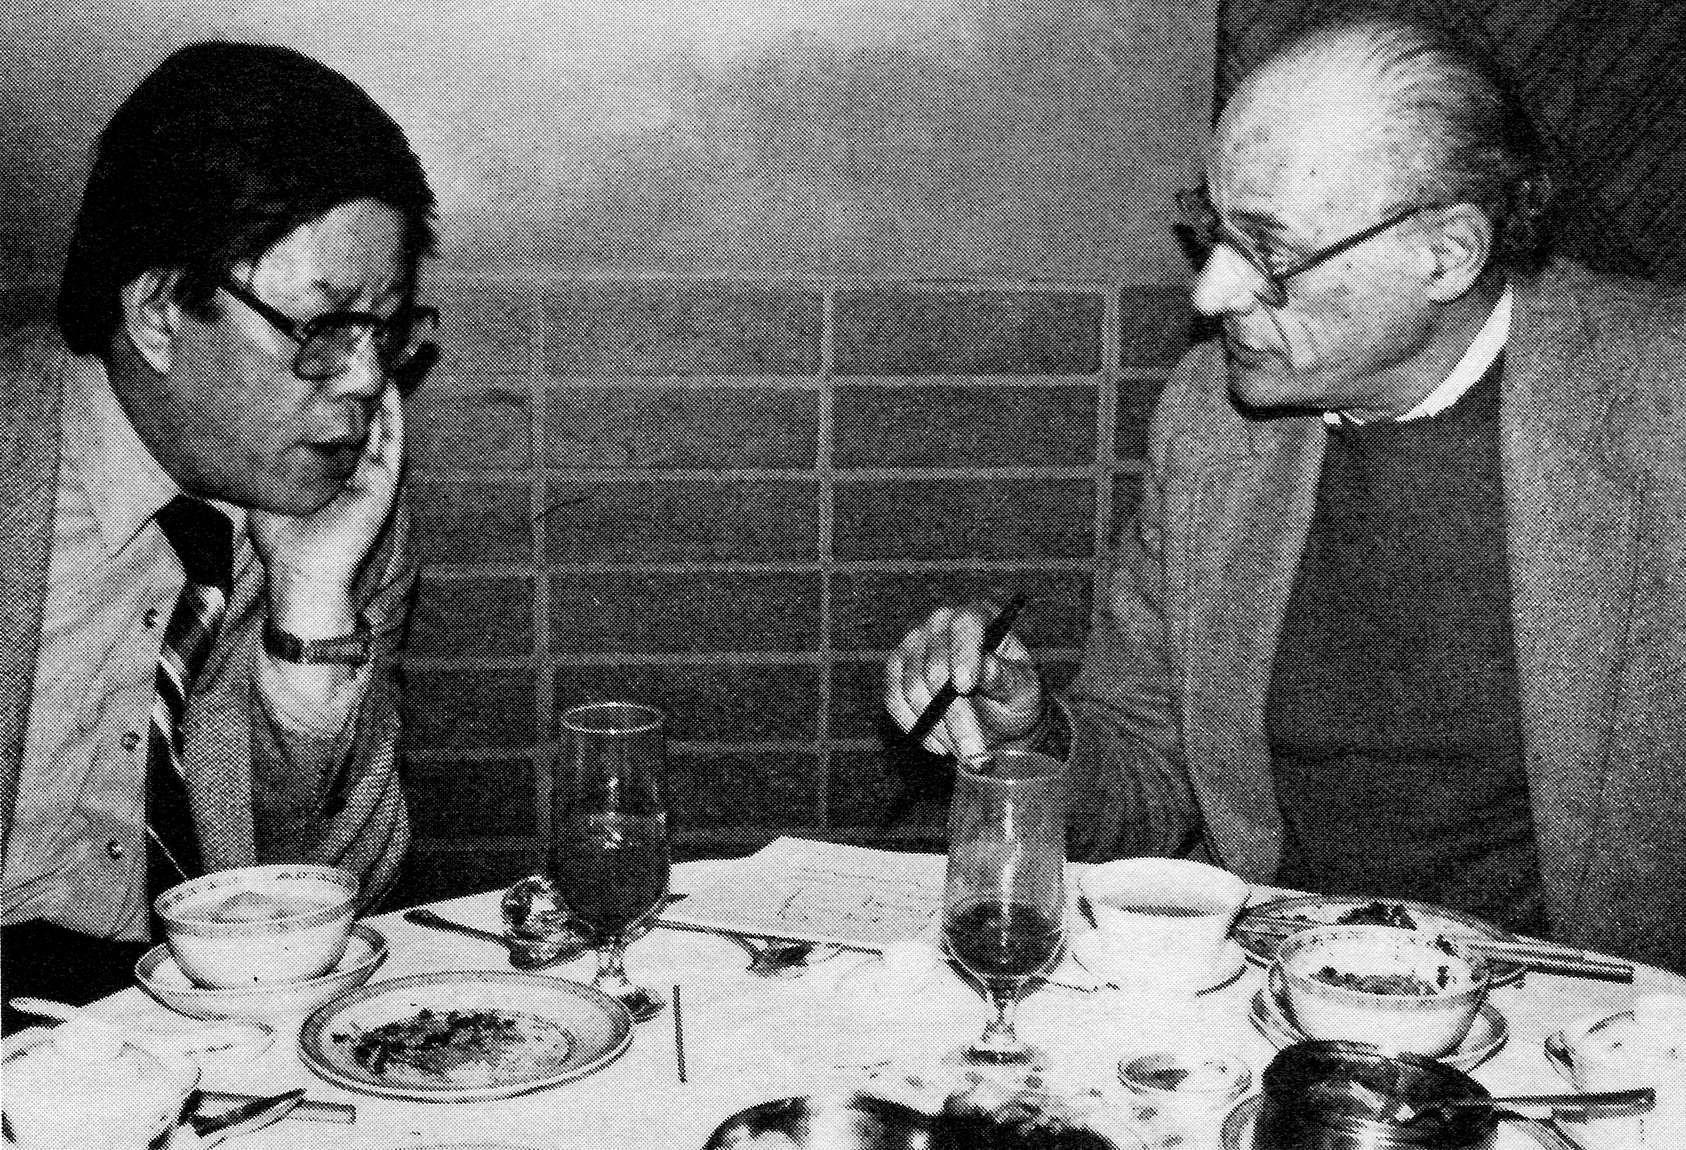 """Over lunch at New York's Sichuan Pavilion Restaurant, Ying Ruocheng and Arthur Miller discuss staging for the Beijing production of """"Death of a Salesman"""""""